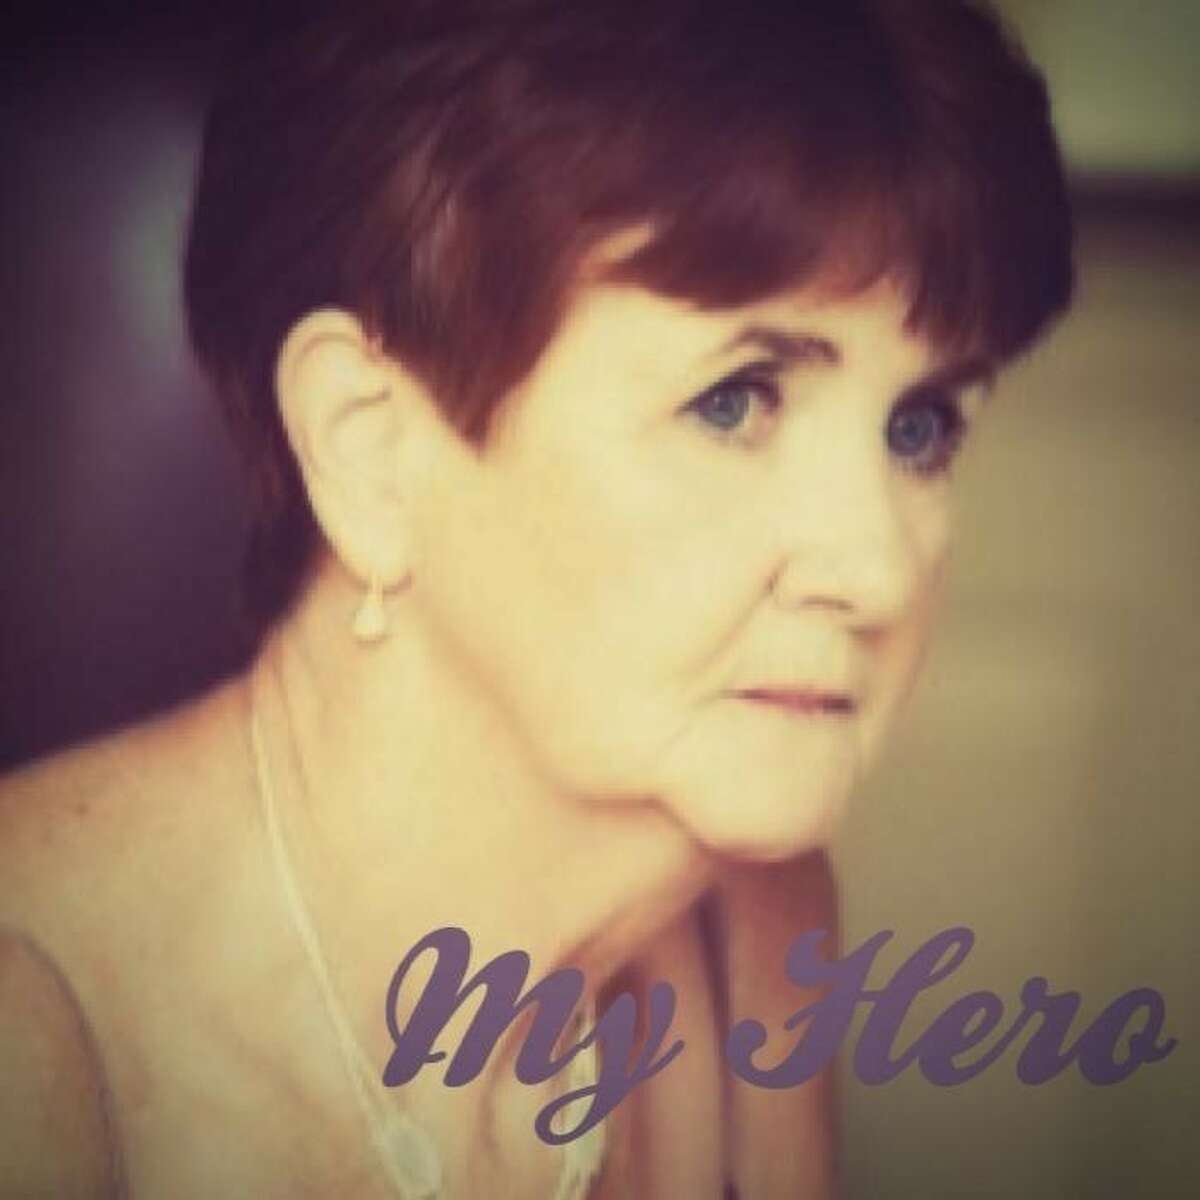 1. Ten years ago, when I was 27, my mother was diagnosed with dementia and I became her caregiver. She passed away in 2014. Since then, I've done all I can to help raise awareness and funds to help us get to a world without Alzheimer's disease/ dementia. One of the ways I do this is by participating in the annual Walk to End Alzheimer's event. This year's walk is September 21st at Siena College.